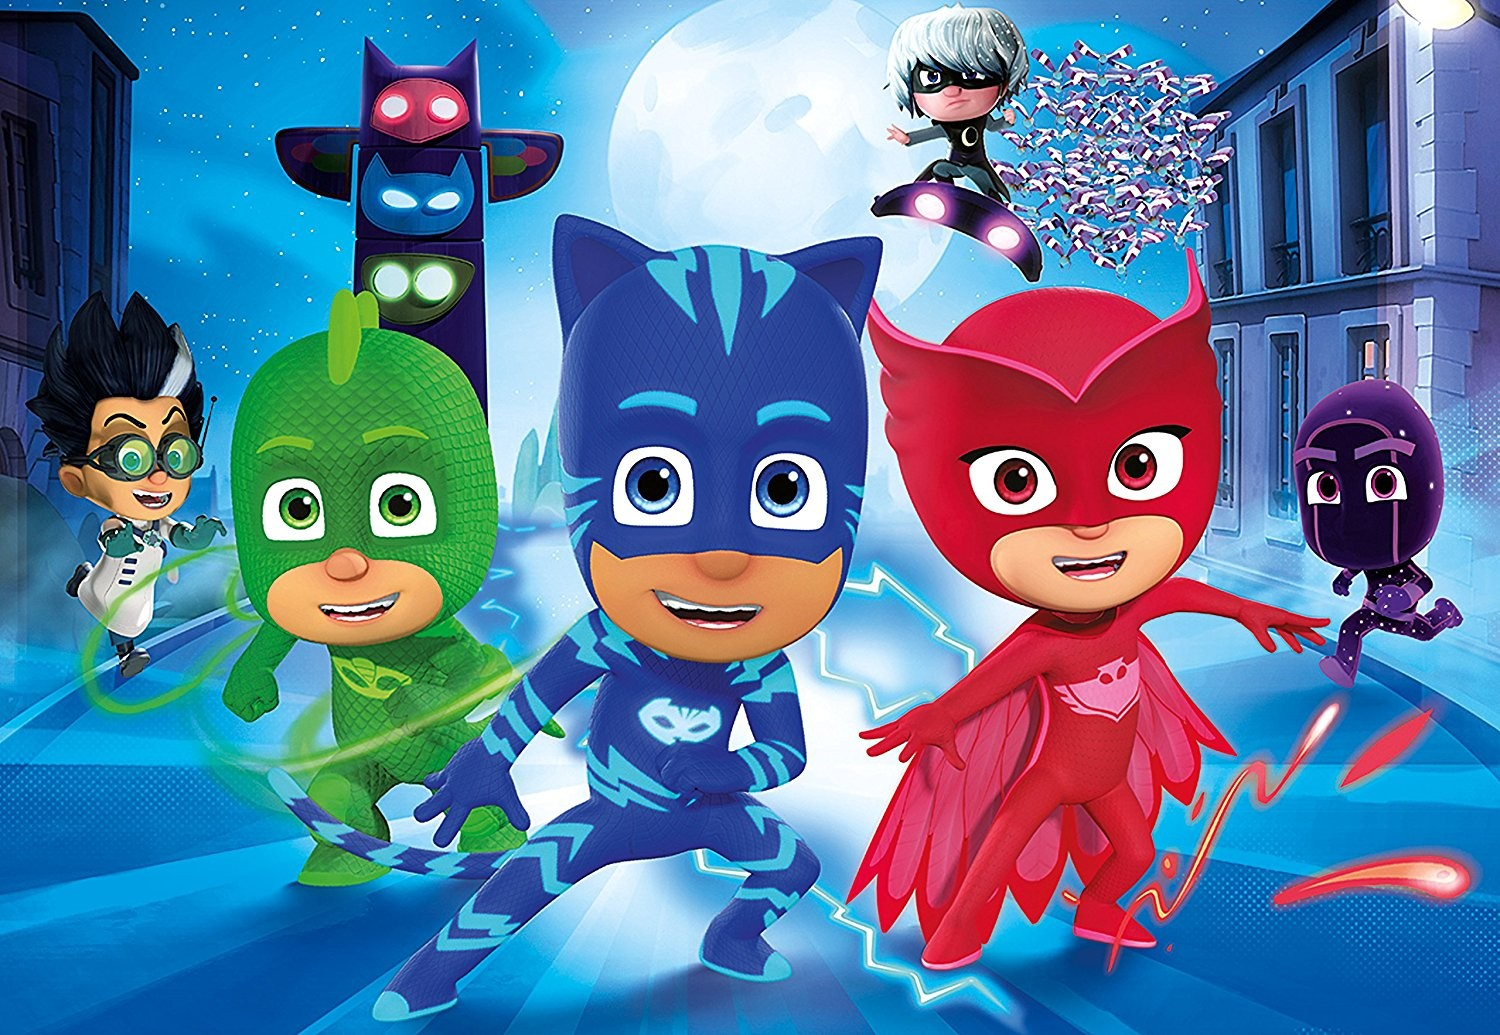 Super pigiamini la guida completa al mondo dei pj masks for Disegni da colorare super pigiamini